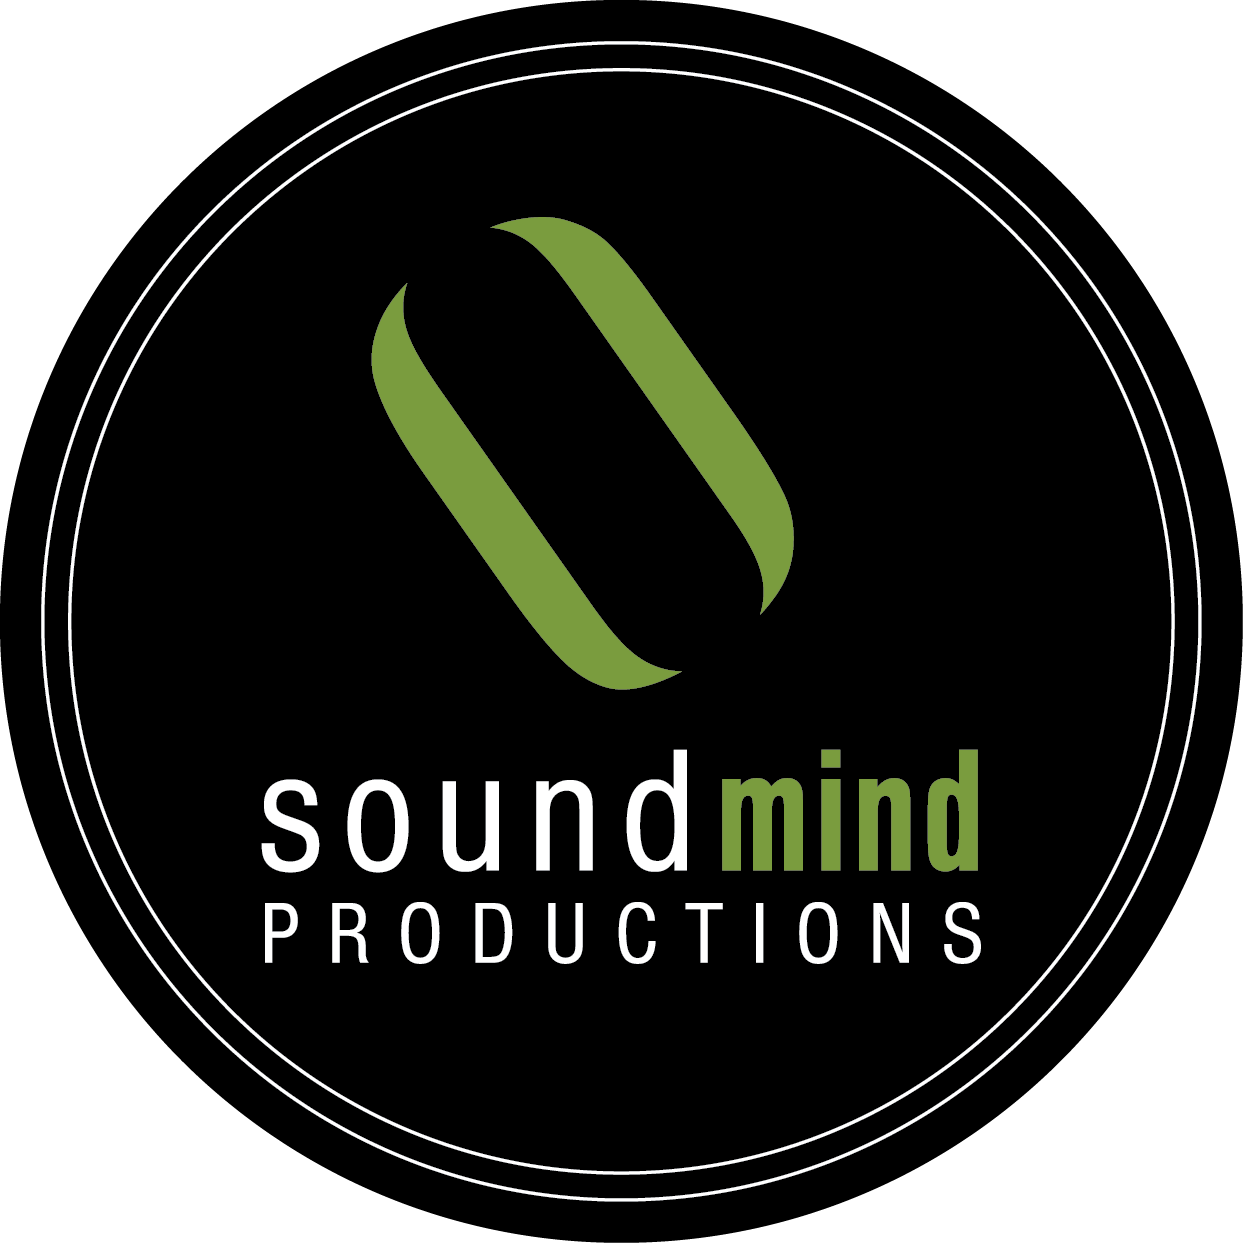 Sound Mind Productions